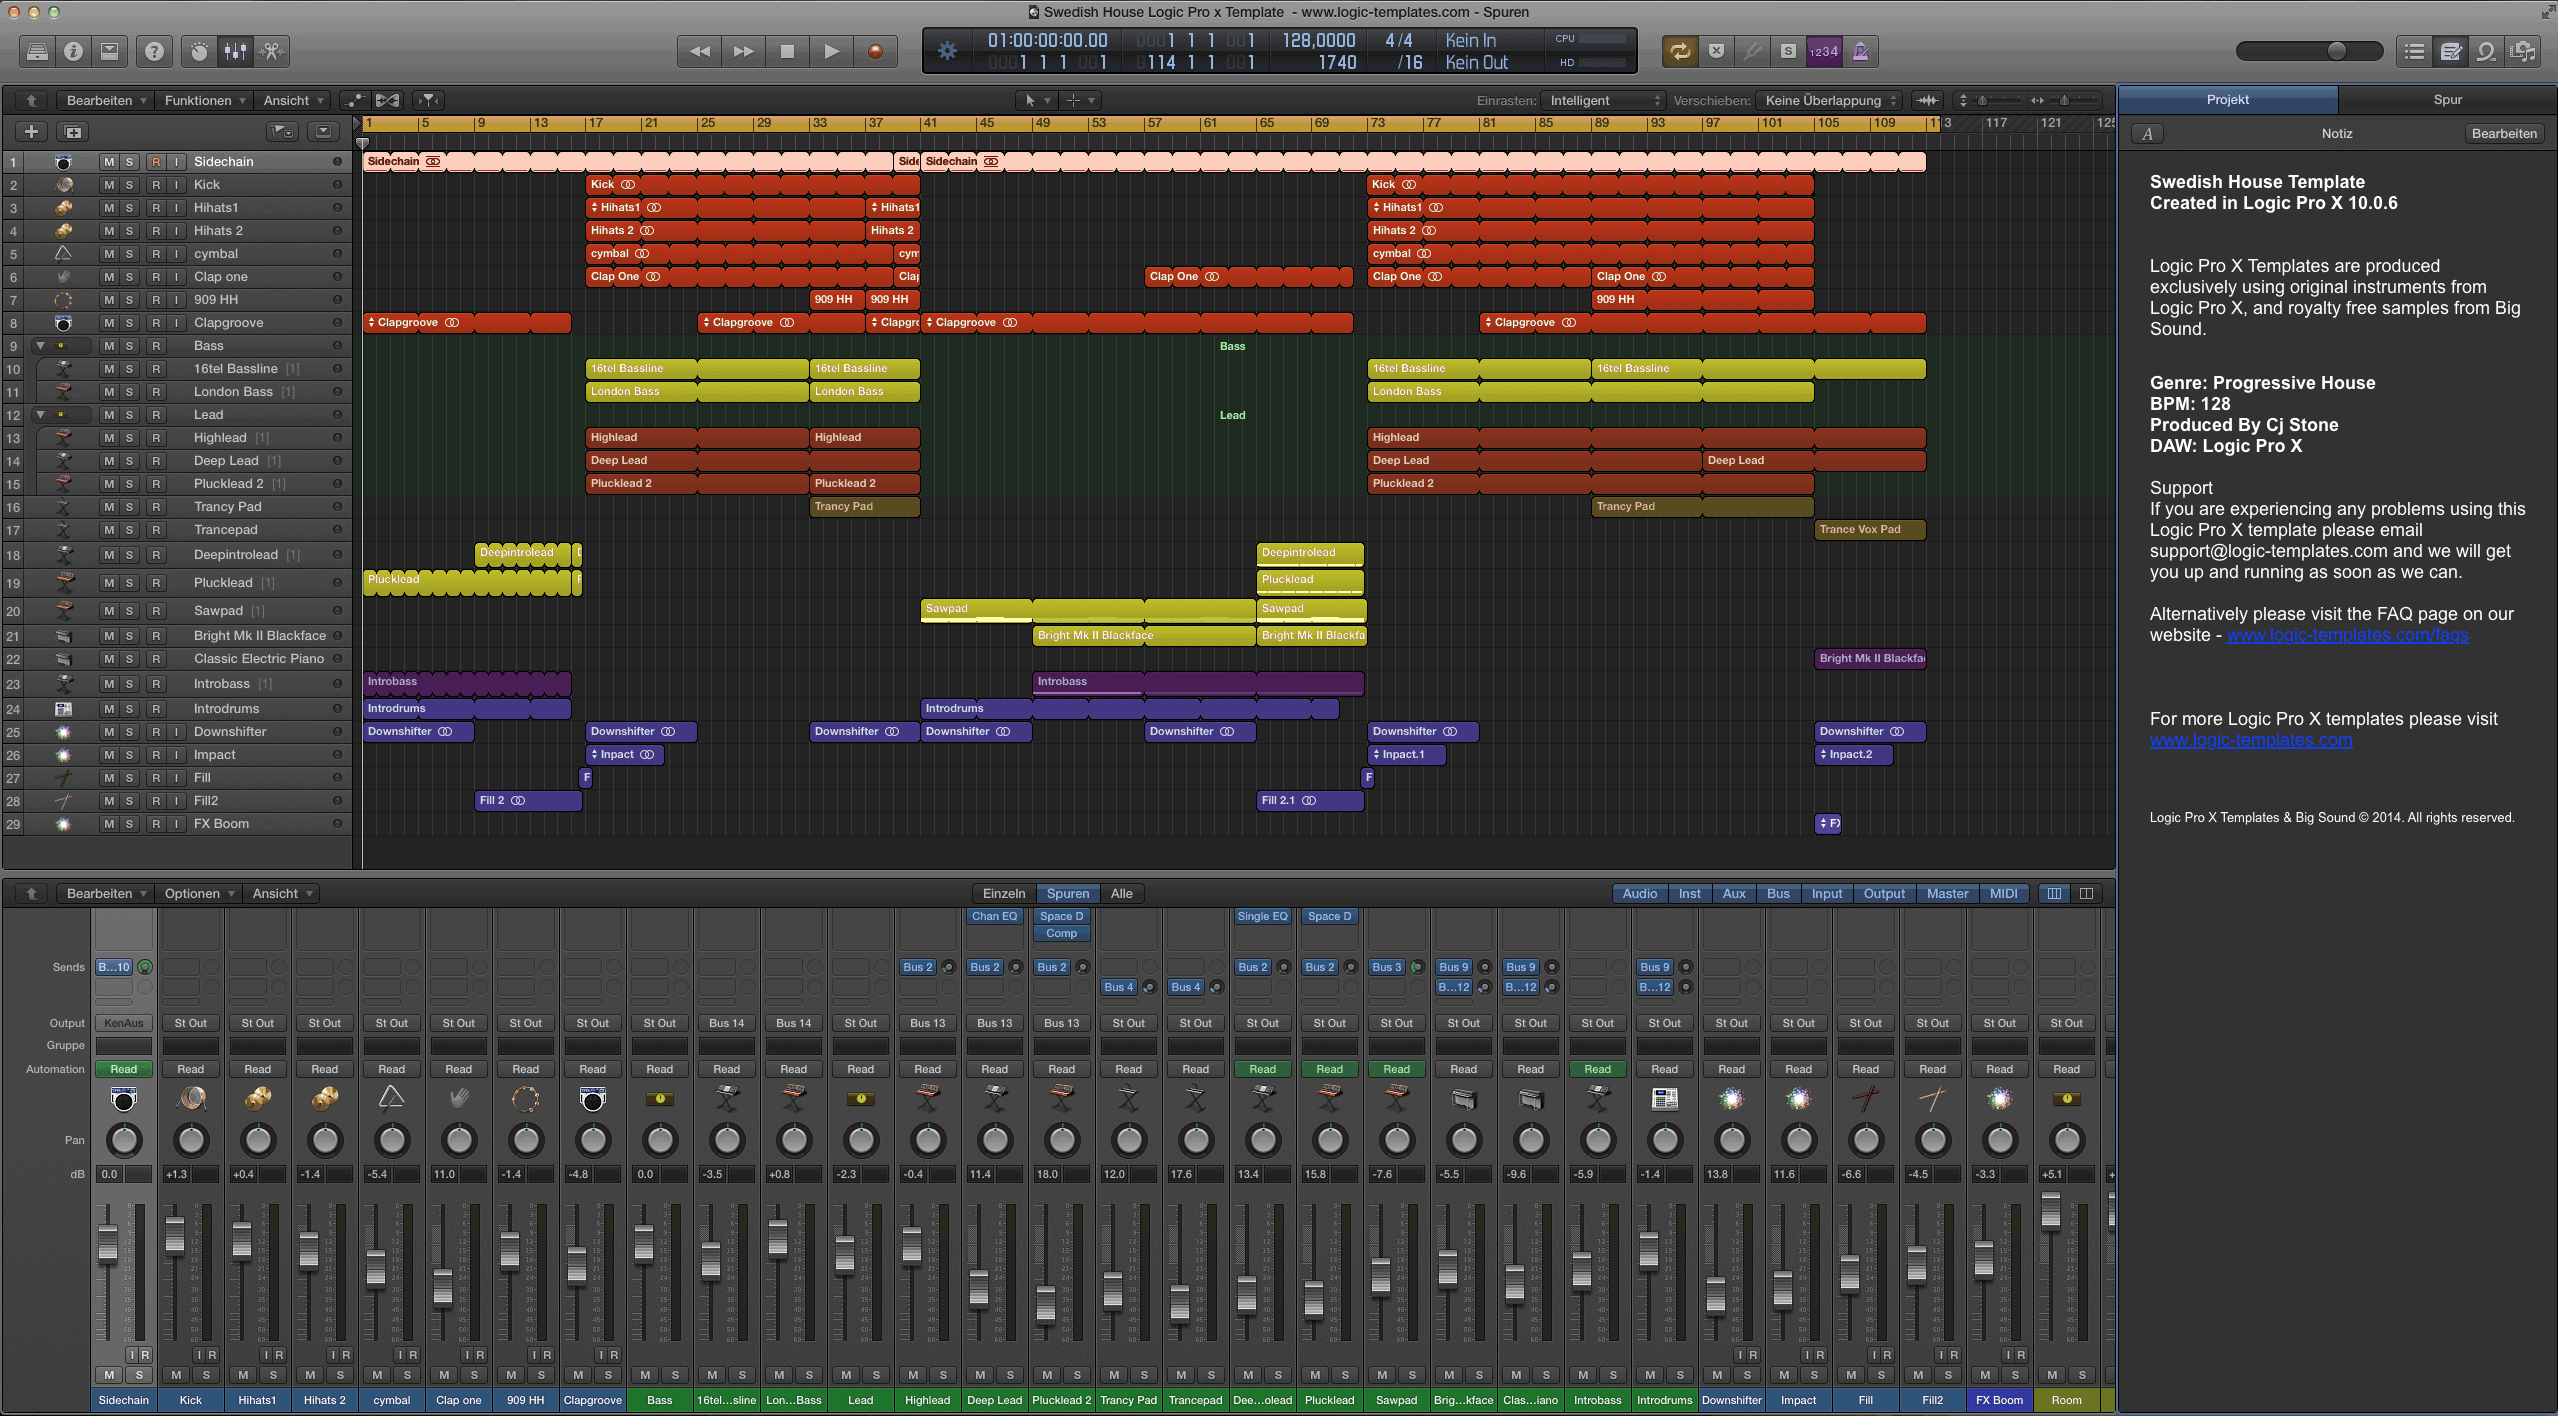 Swedish House Logic Pro x Template